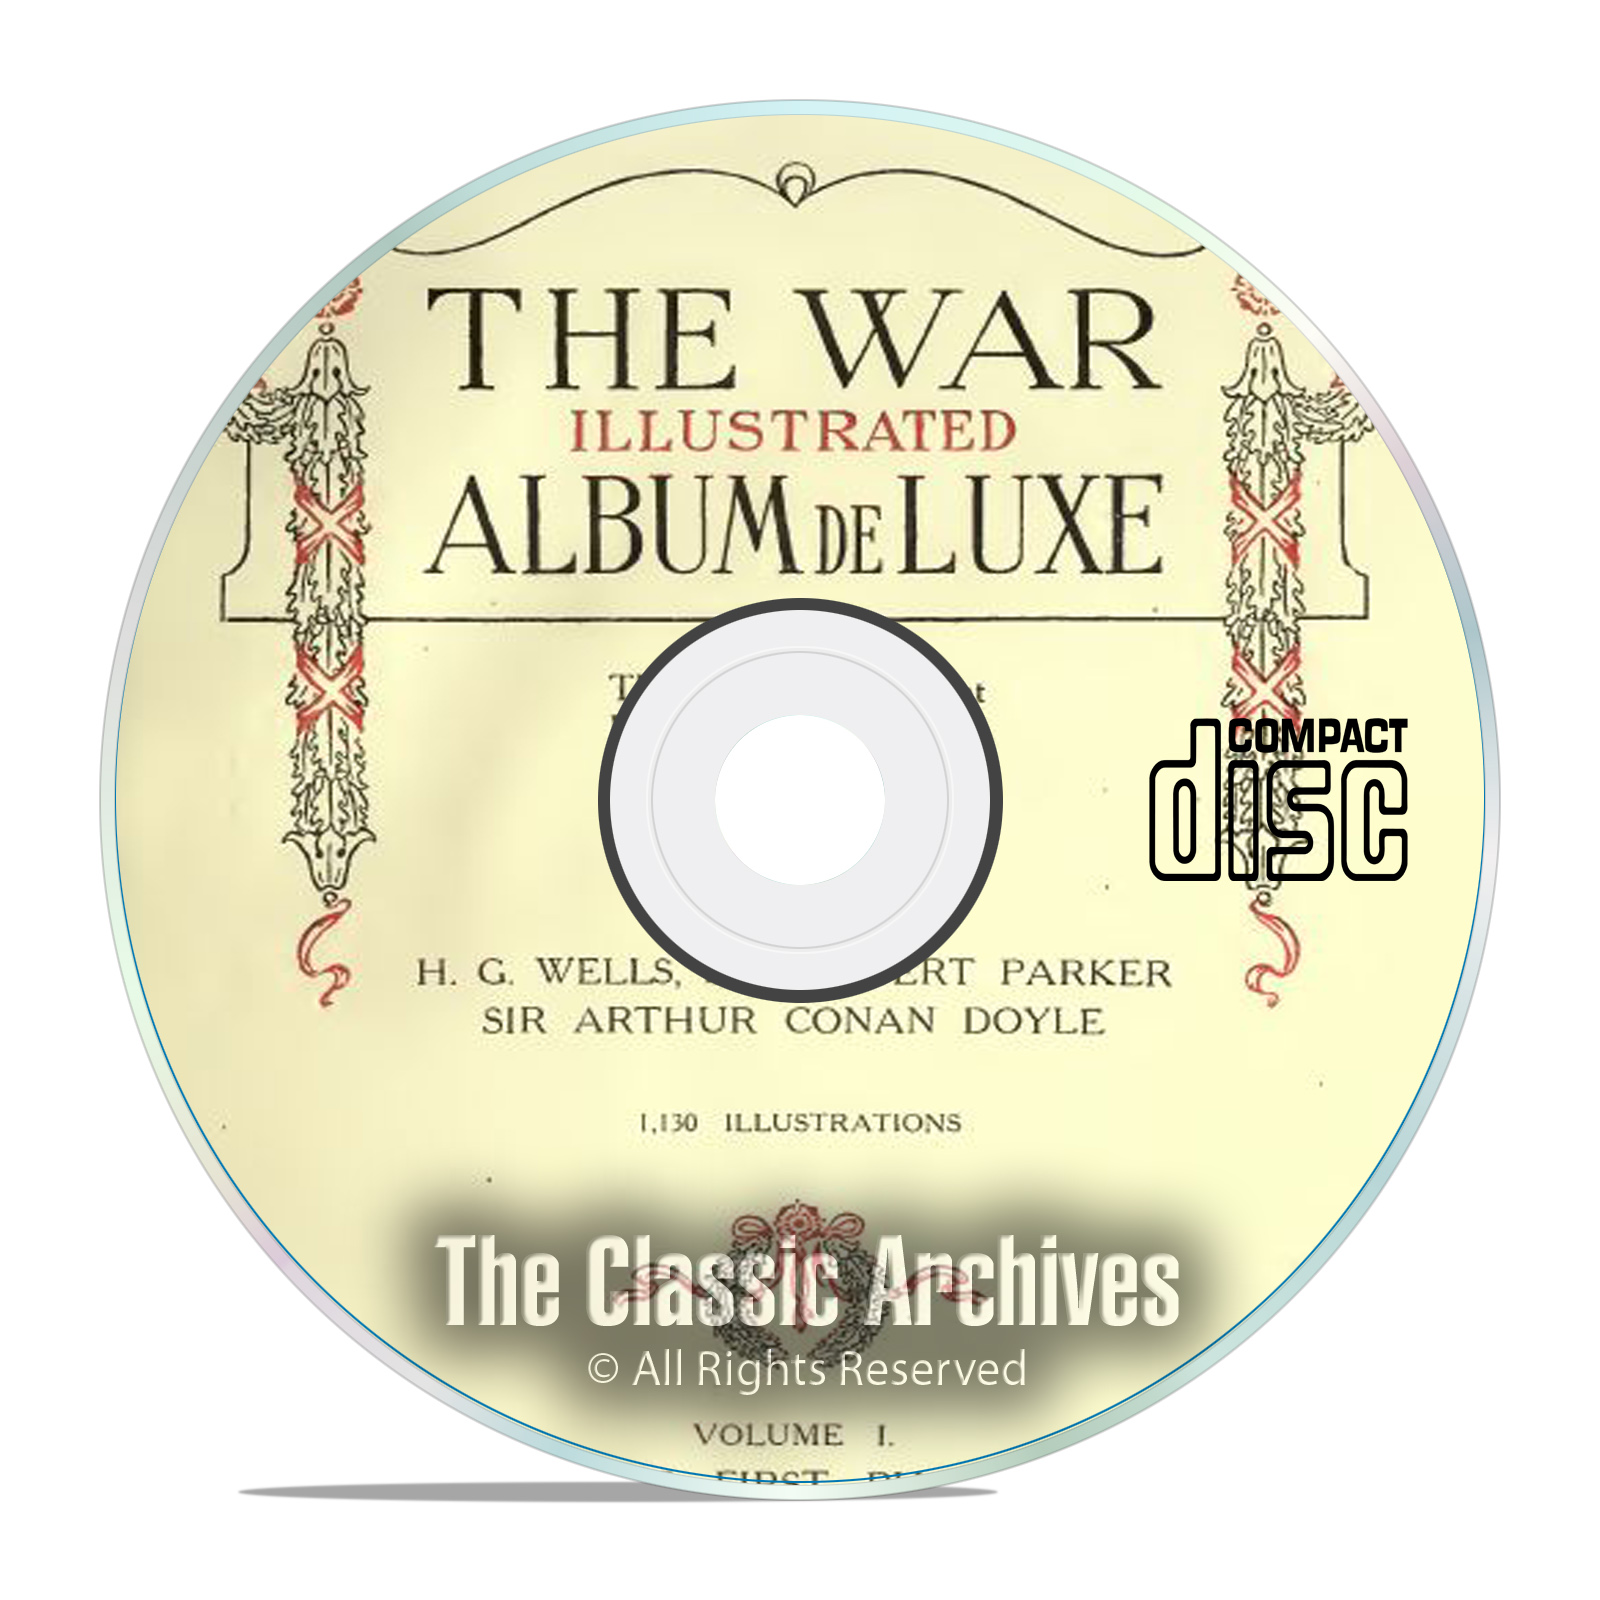 The War Illustrated Album Deluxe World War 1, 10 Volume Complete Set PDF CD